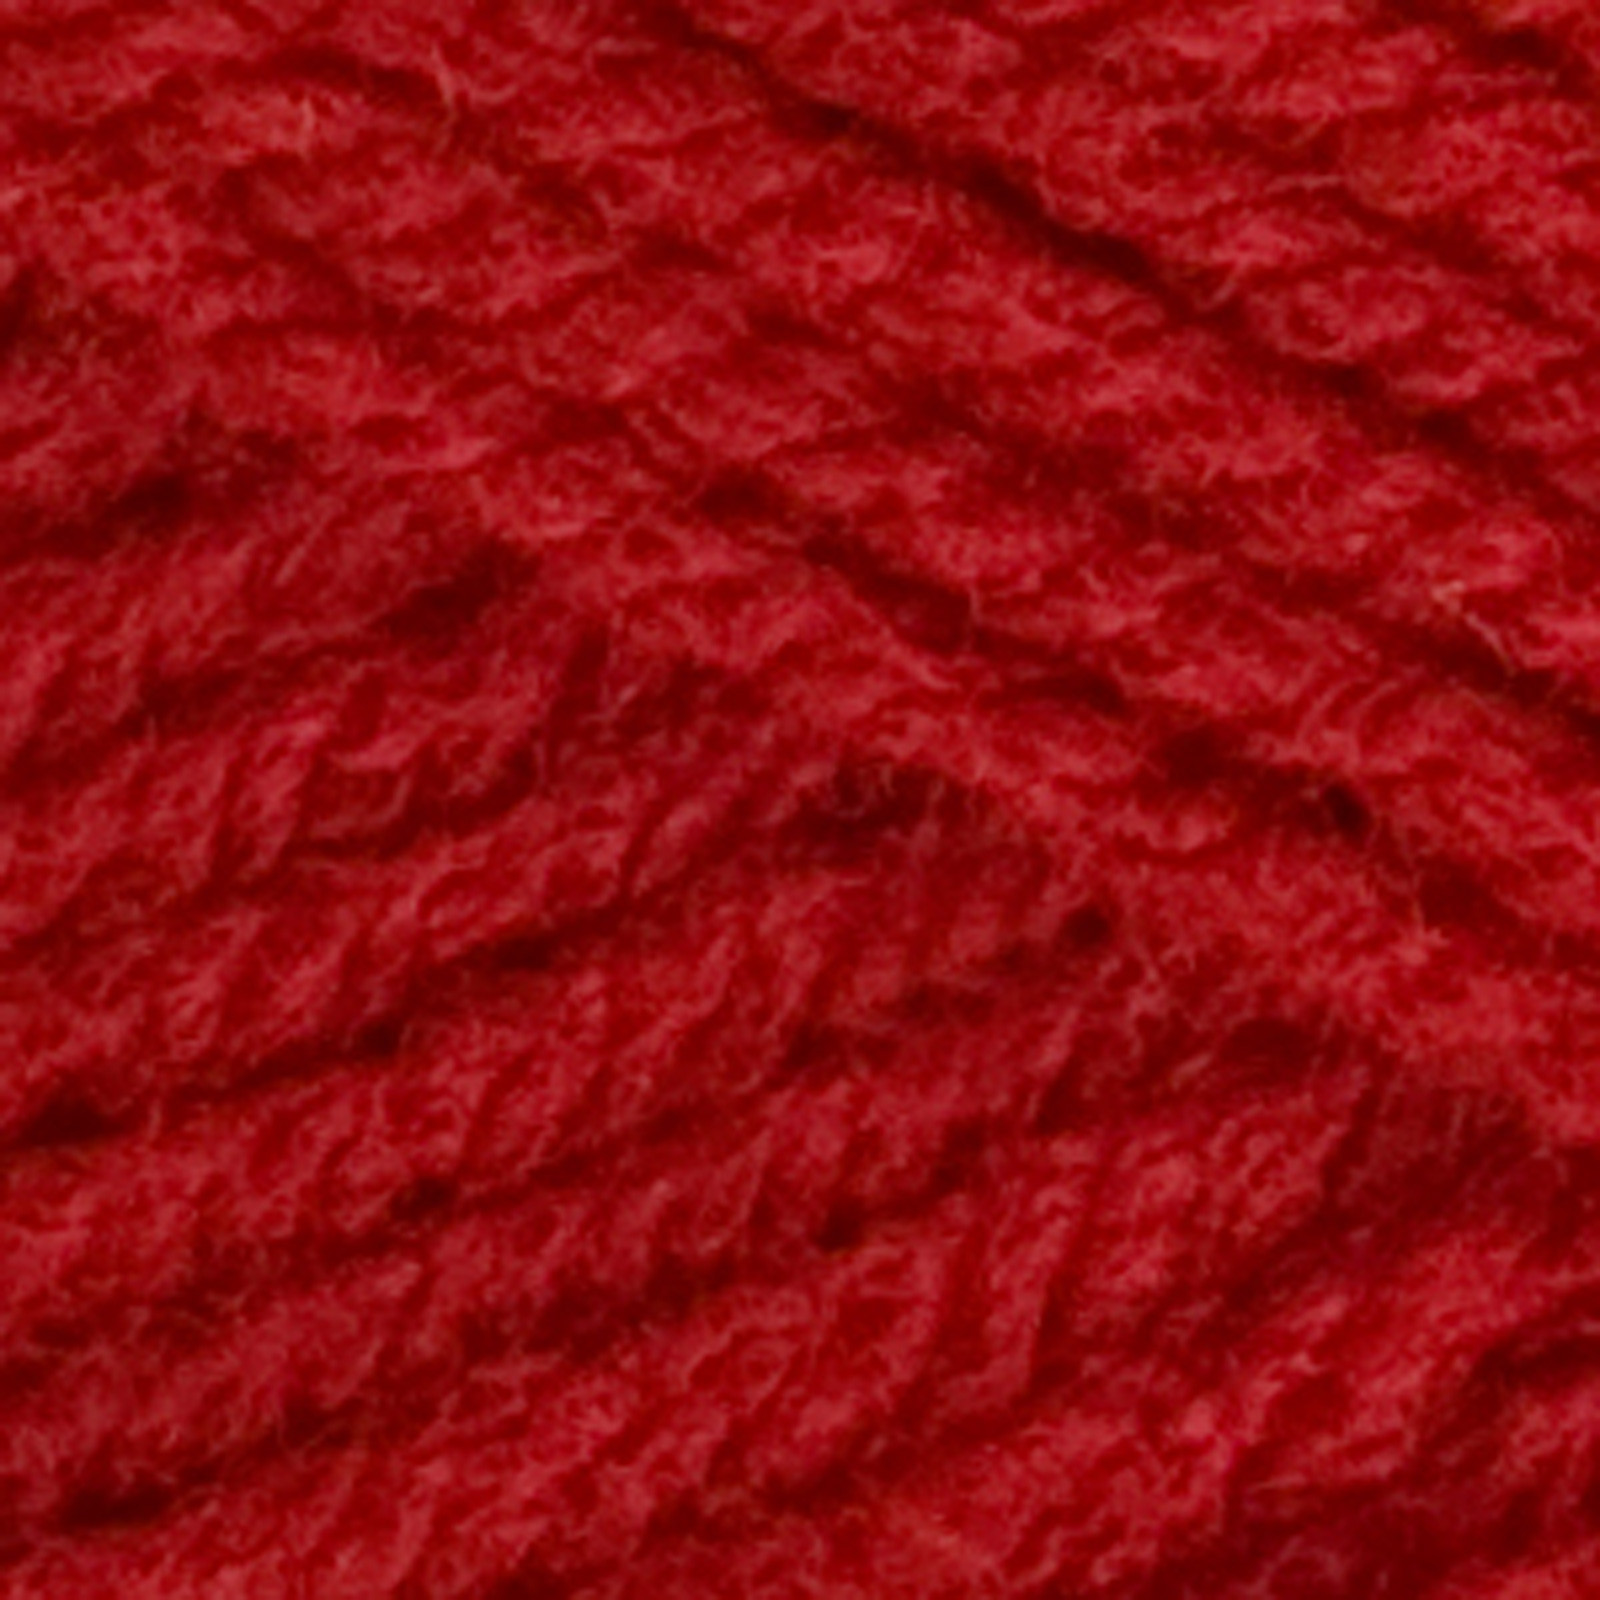 Unique Red Heart Super Saver Camo Yarn Discount Designer Fabric Discount Red Heart Yarn Of Great 26 Models Discount Red Heart Yarn